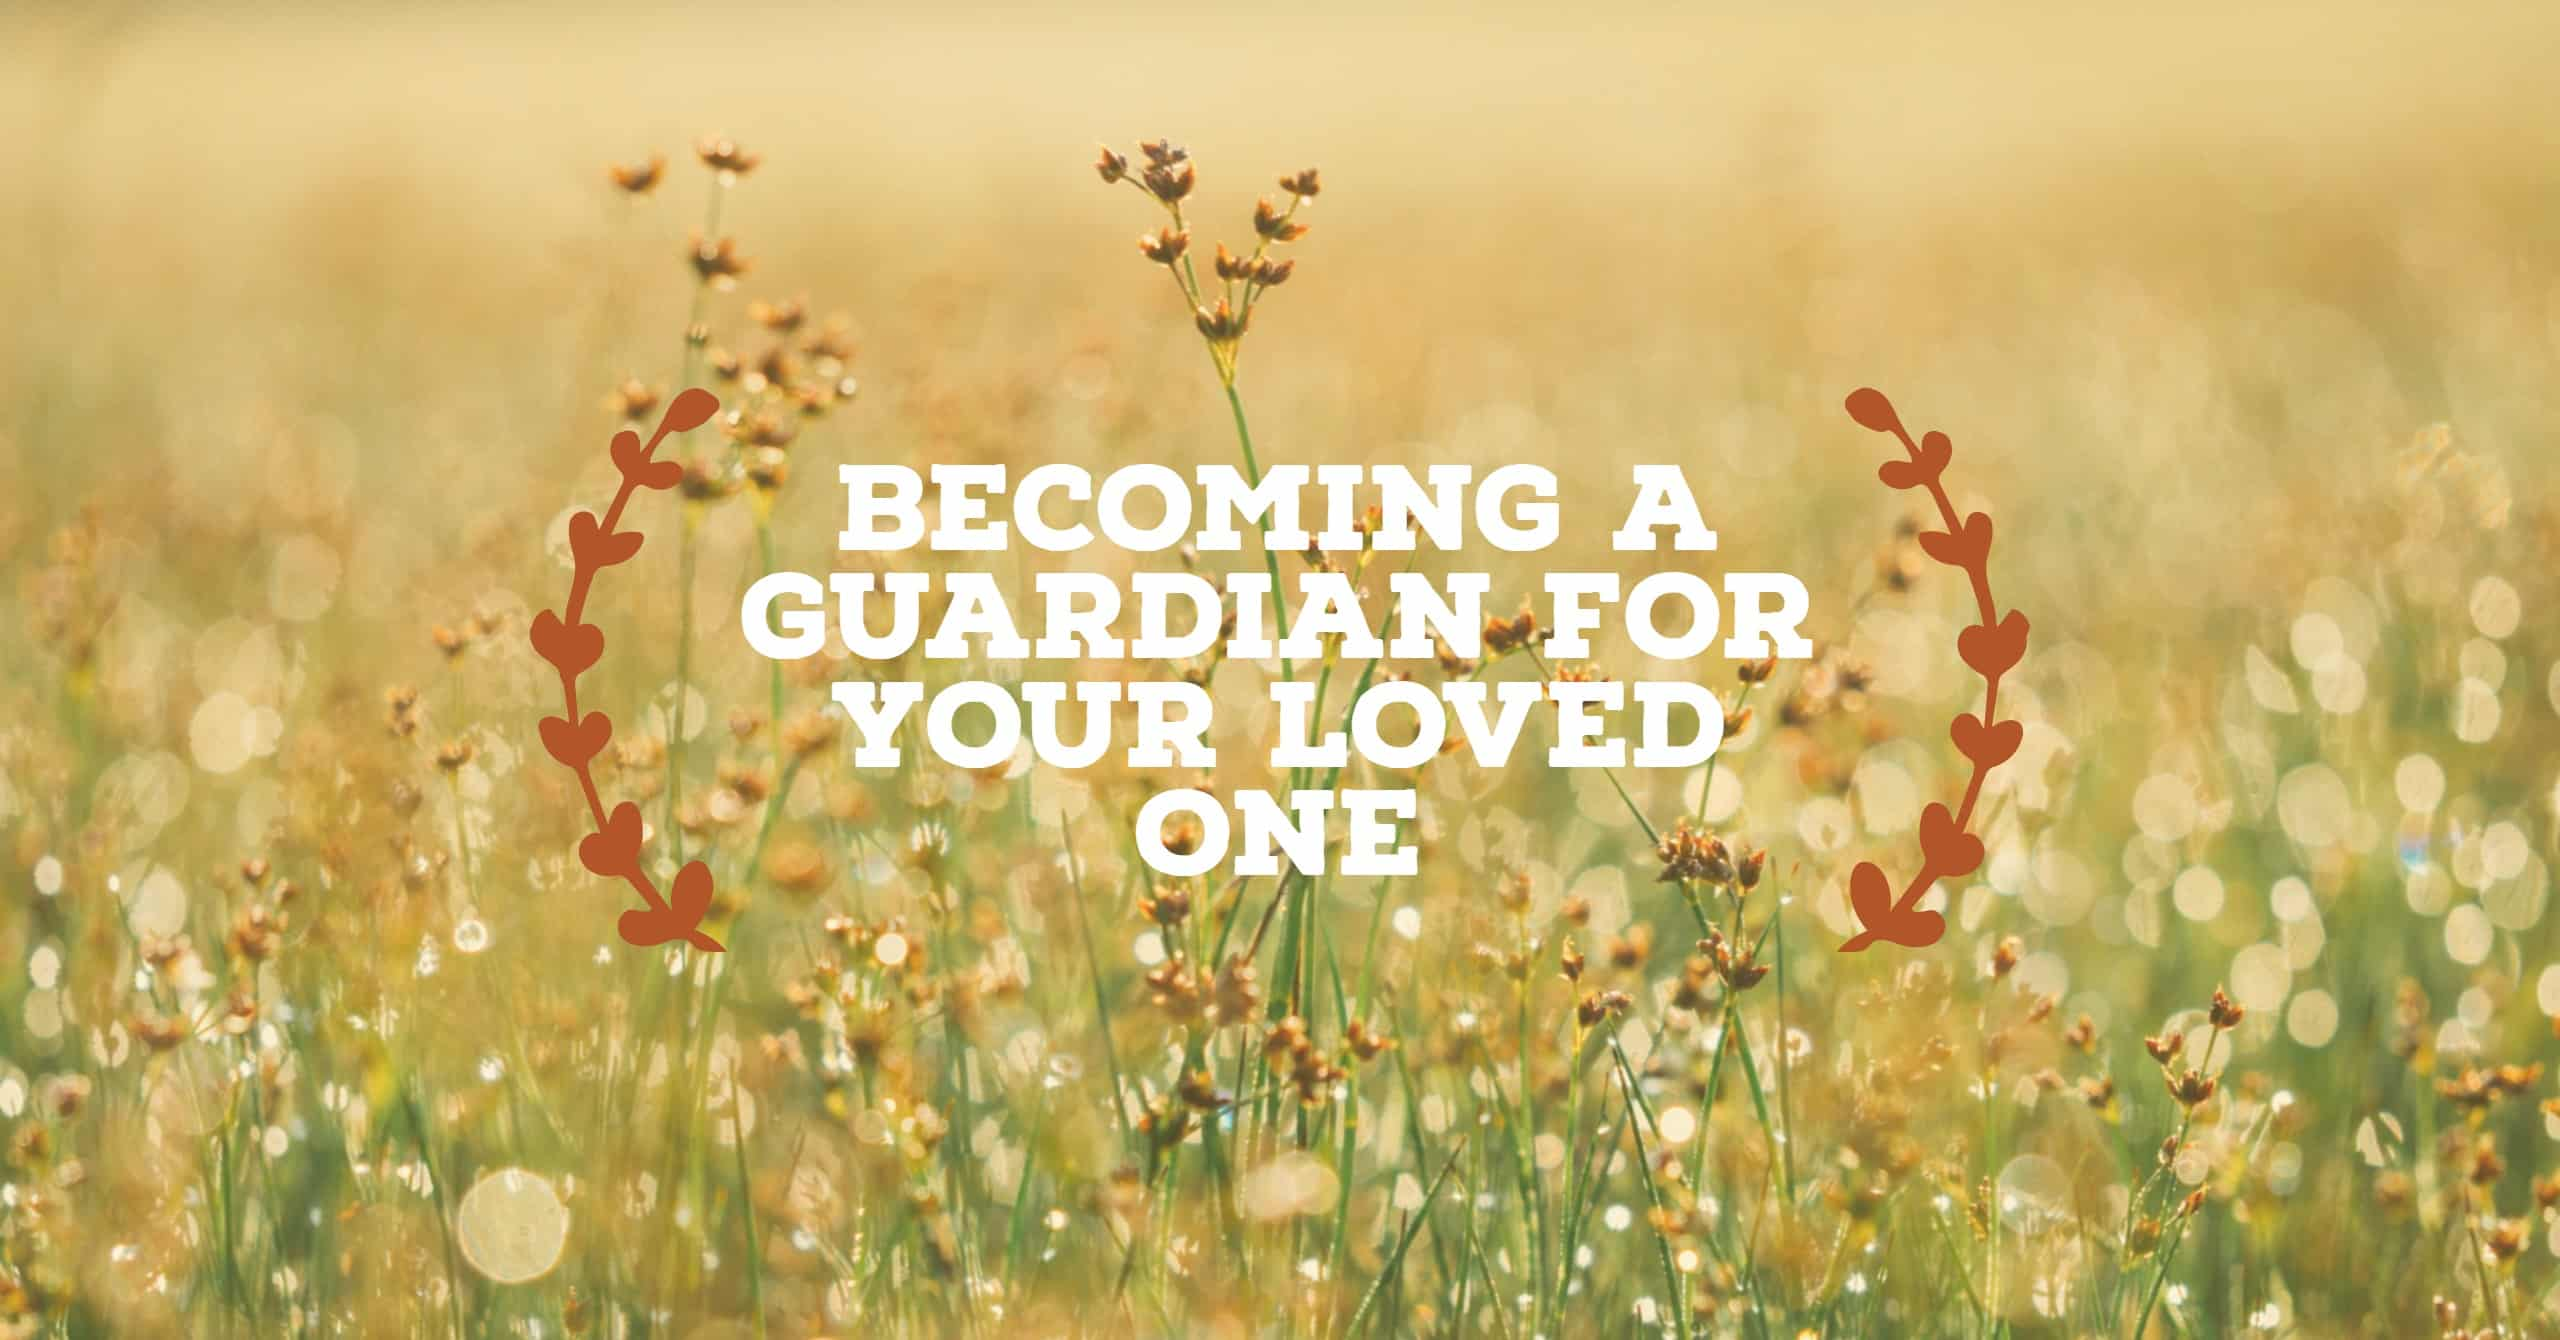 Becoming a Guardian for your Loved One